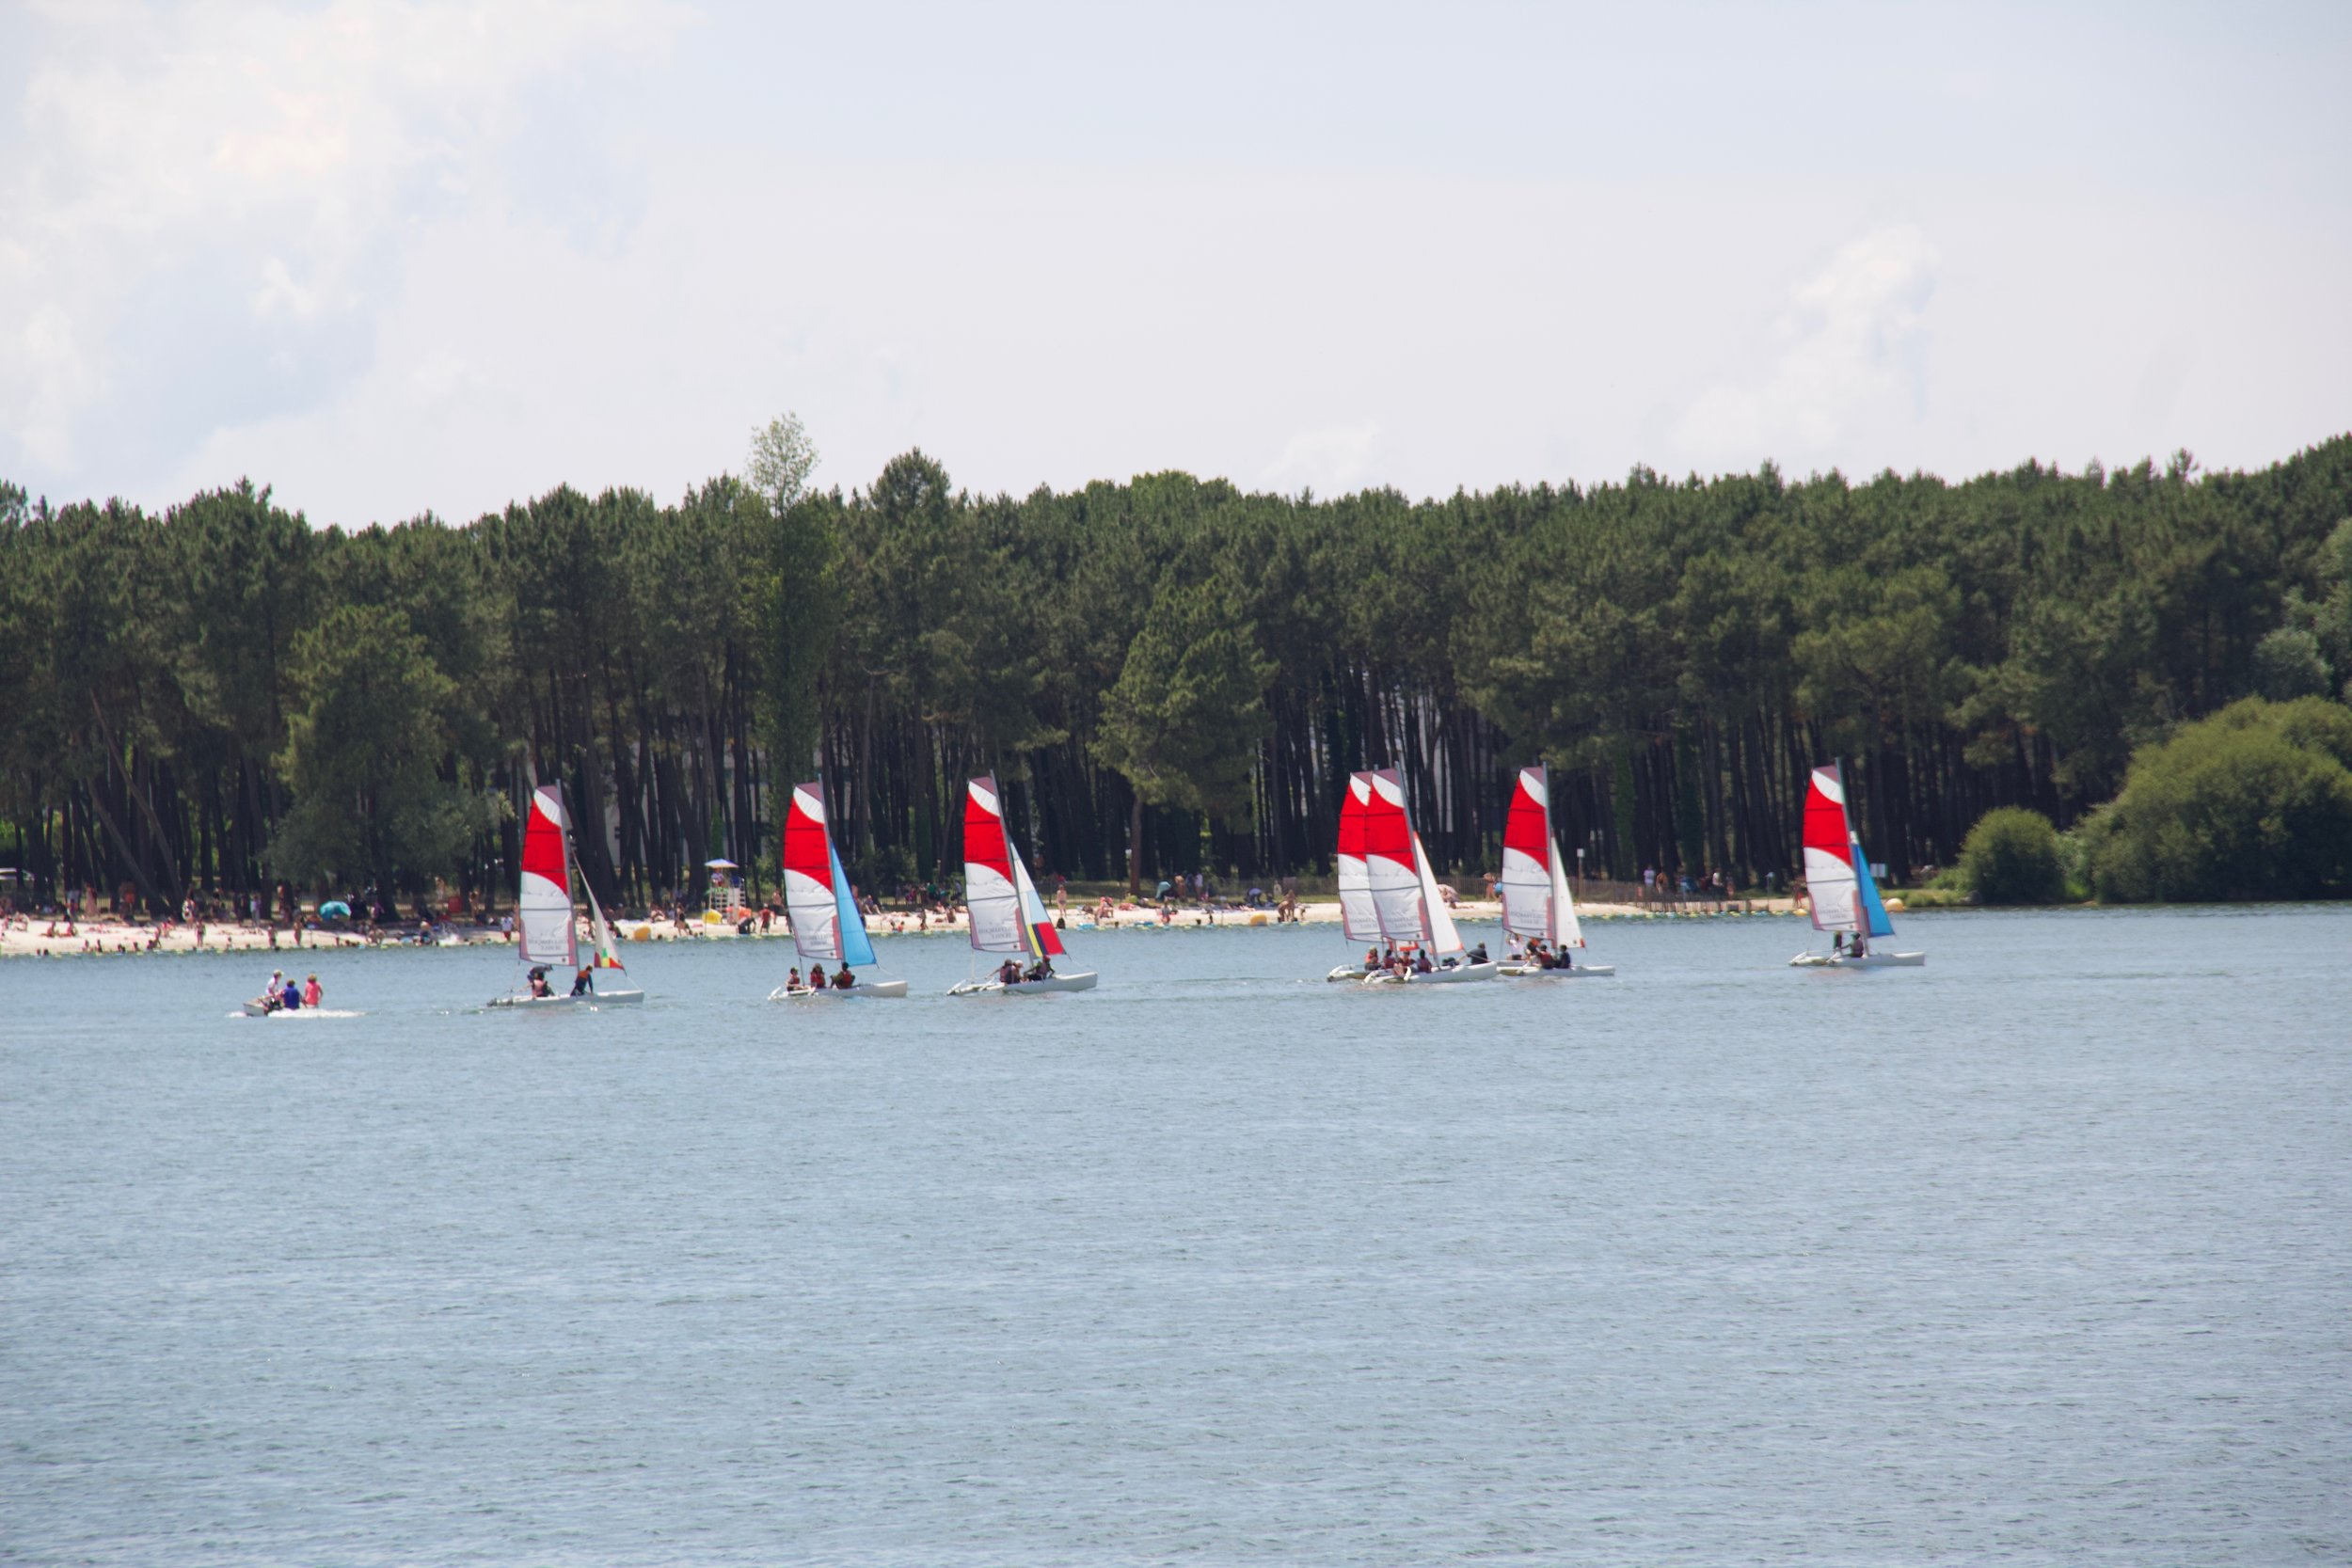 bordeaux-lac-noomadia.jpg